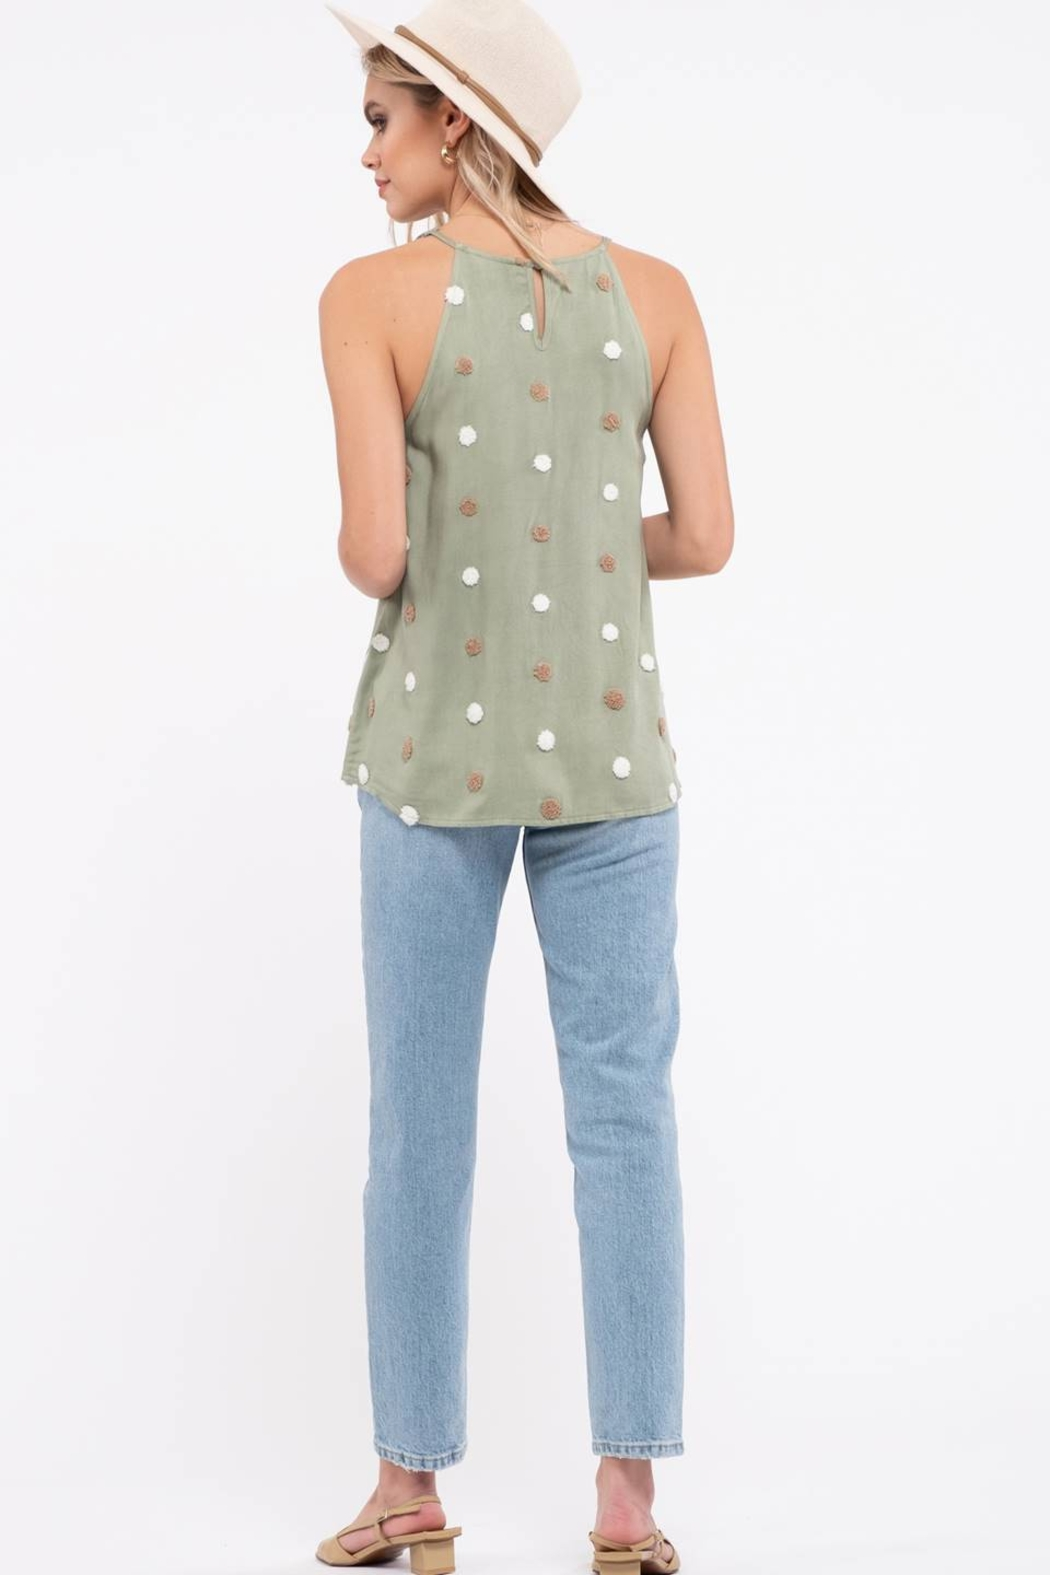 blu pepper  TWO TONE SWISS DOT TOP - Front Full Image